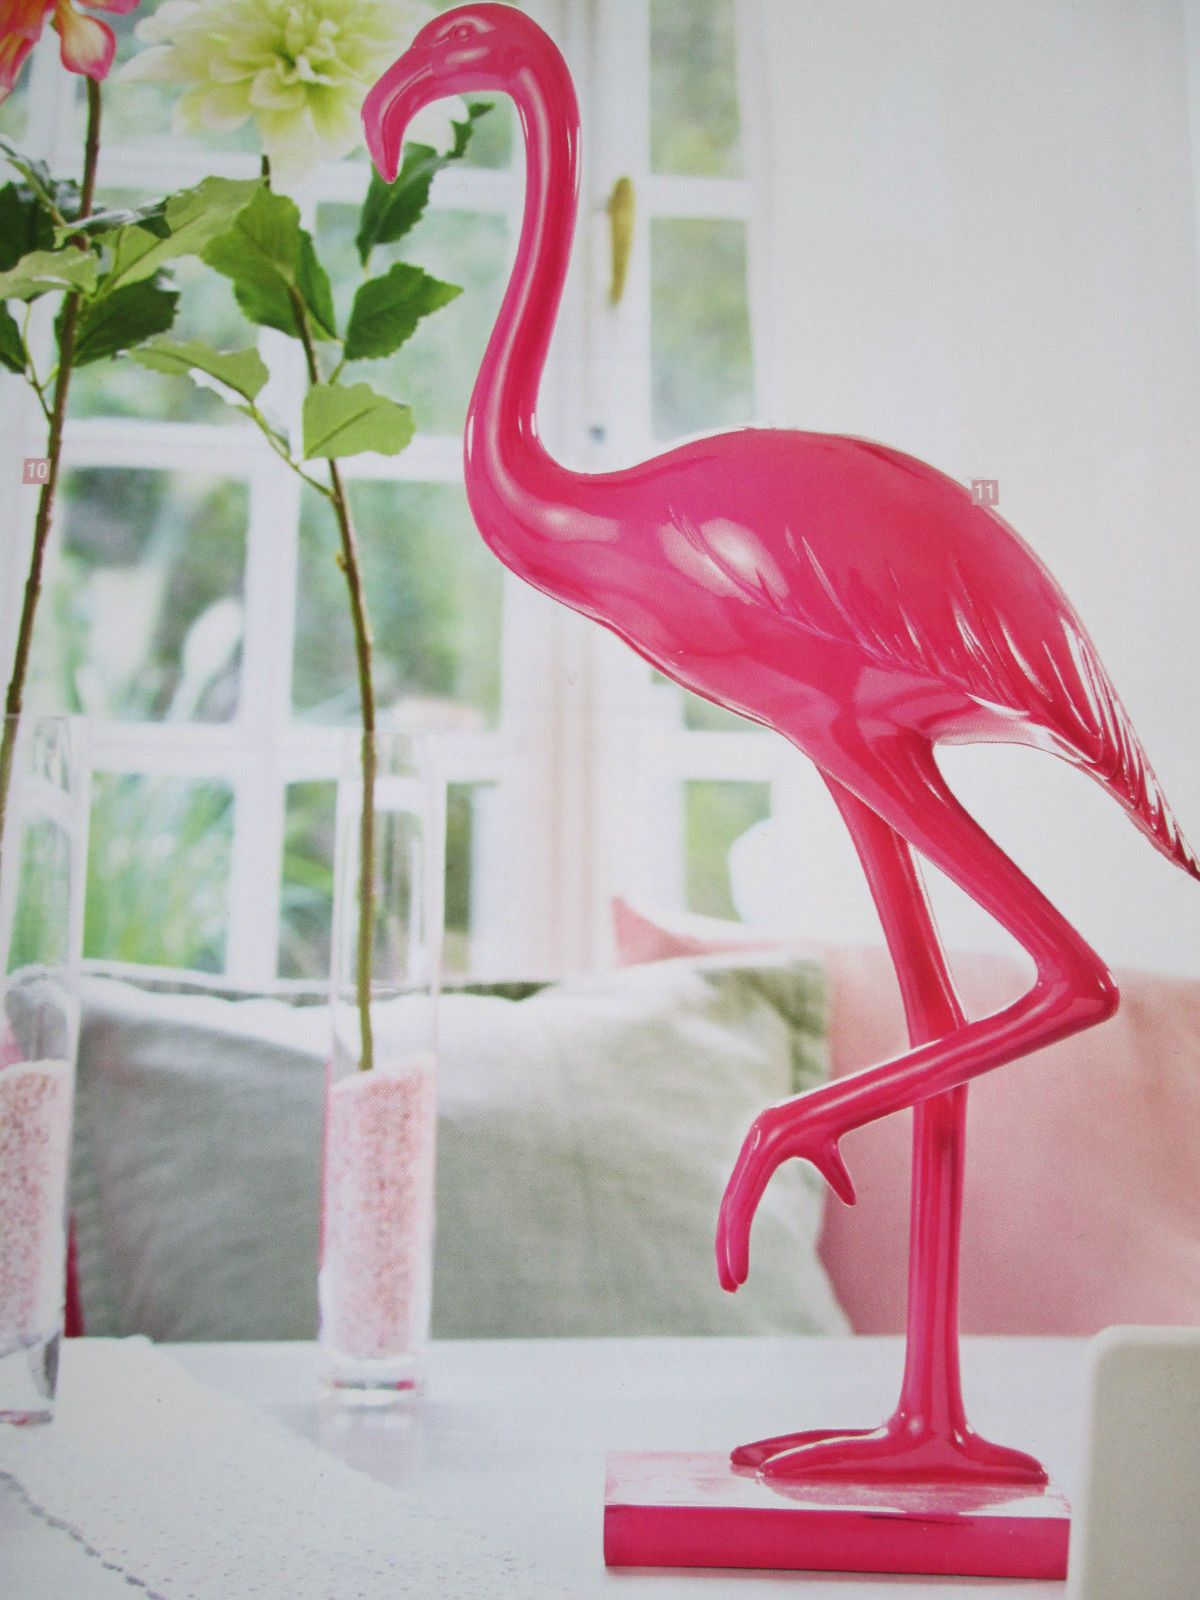 flamingo deko figur pink polyresin 61 cm in m bel wohnen dekoration dekofiguren ebay. Black Bedroom Furniture Sets. Home Design Ideas